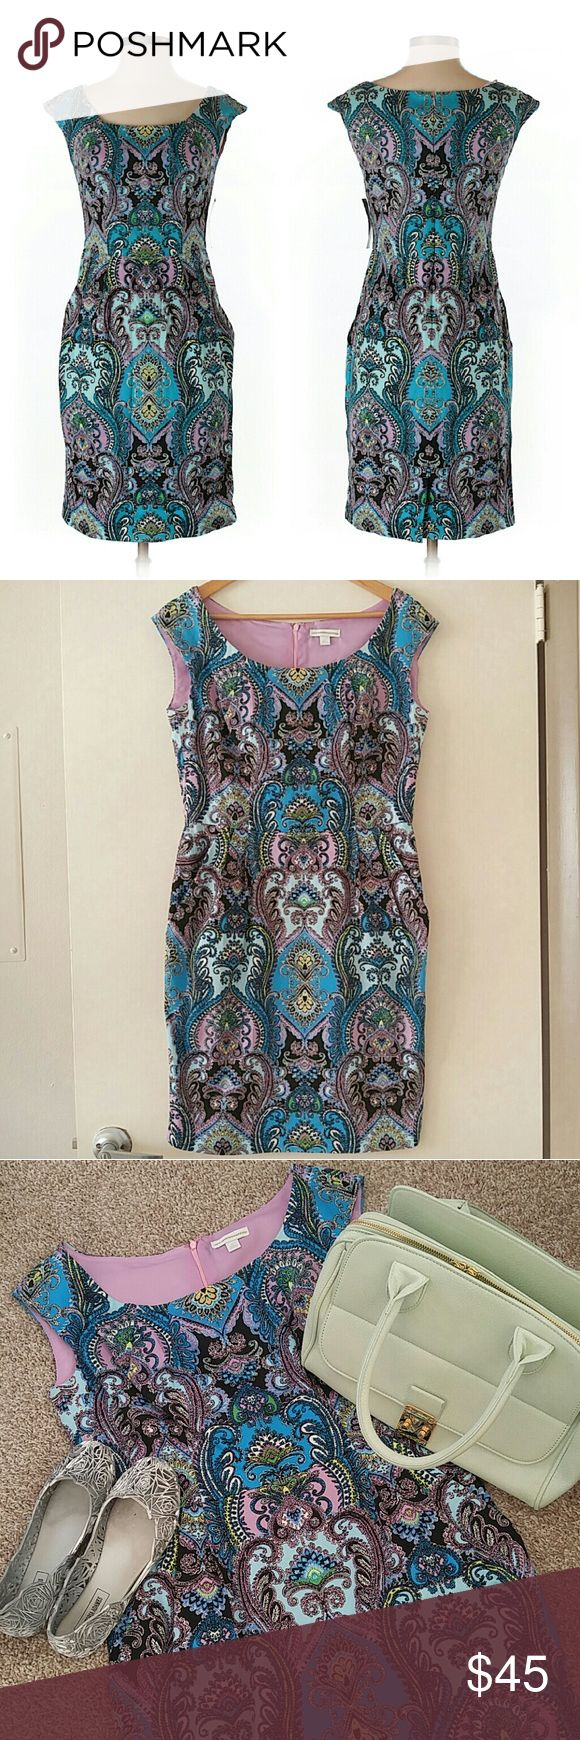 """NWOT New York & Company Paisley Sheath Dress STUNNING! I'm so sad I never wore this dress! Hidden back zipper. Boat neckline w/wide straps. Flattering tailoring. Darted bust. Subtle pleats below waist. Seamed empire waist. POCKETS! Pencil skirt has a small back slit. Bust is lined to the waist. Comfortable stretch.   {Materials} 97% Cotton 3% Spandex   {Measurements} Bust: 18"""" Waist: 16"""" Hips: 19"""" Length: 37""""  **Handbag listed for sale in another listing* New York & Company Dresses Midi"""